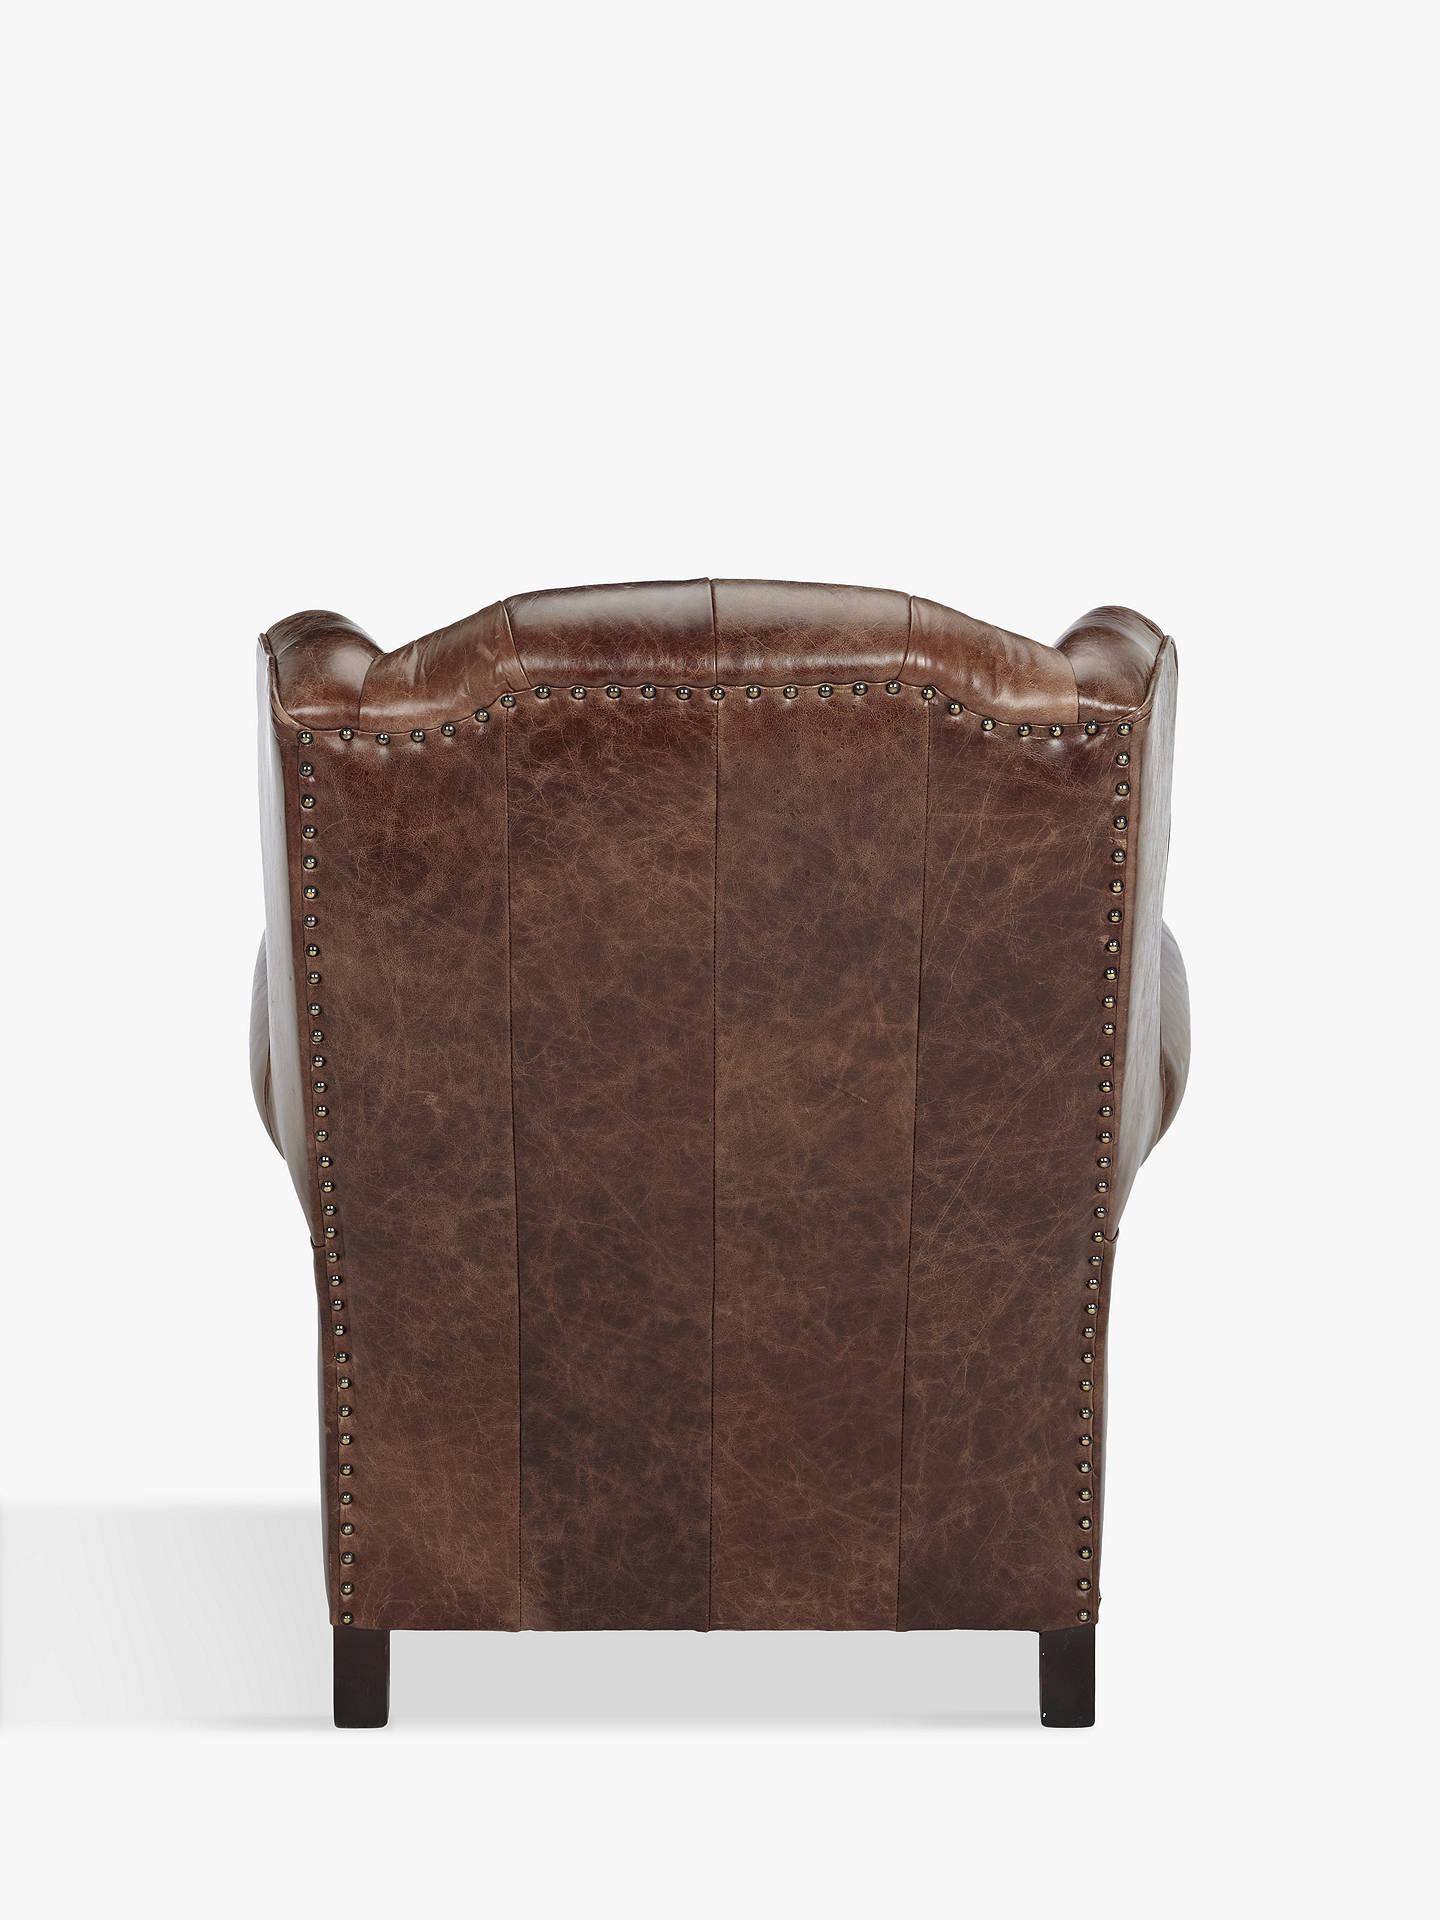 Buy John Lewis & Partners Claverdon Semi-Aniline Leather Armchair, Galveston Hide Online at johnlewis.com